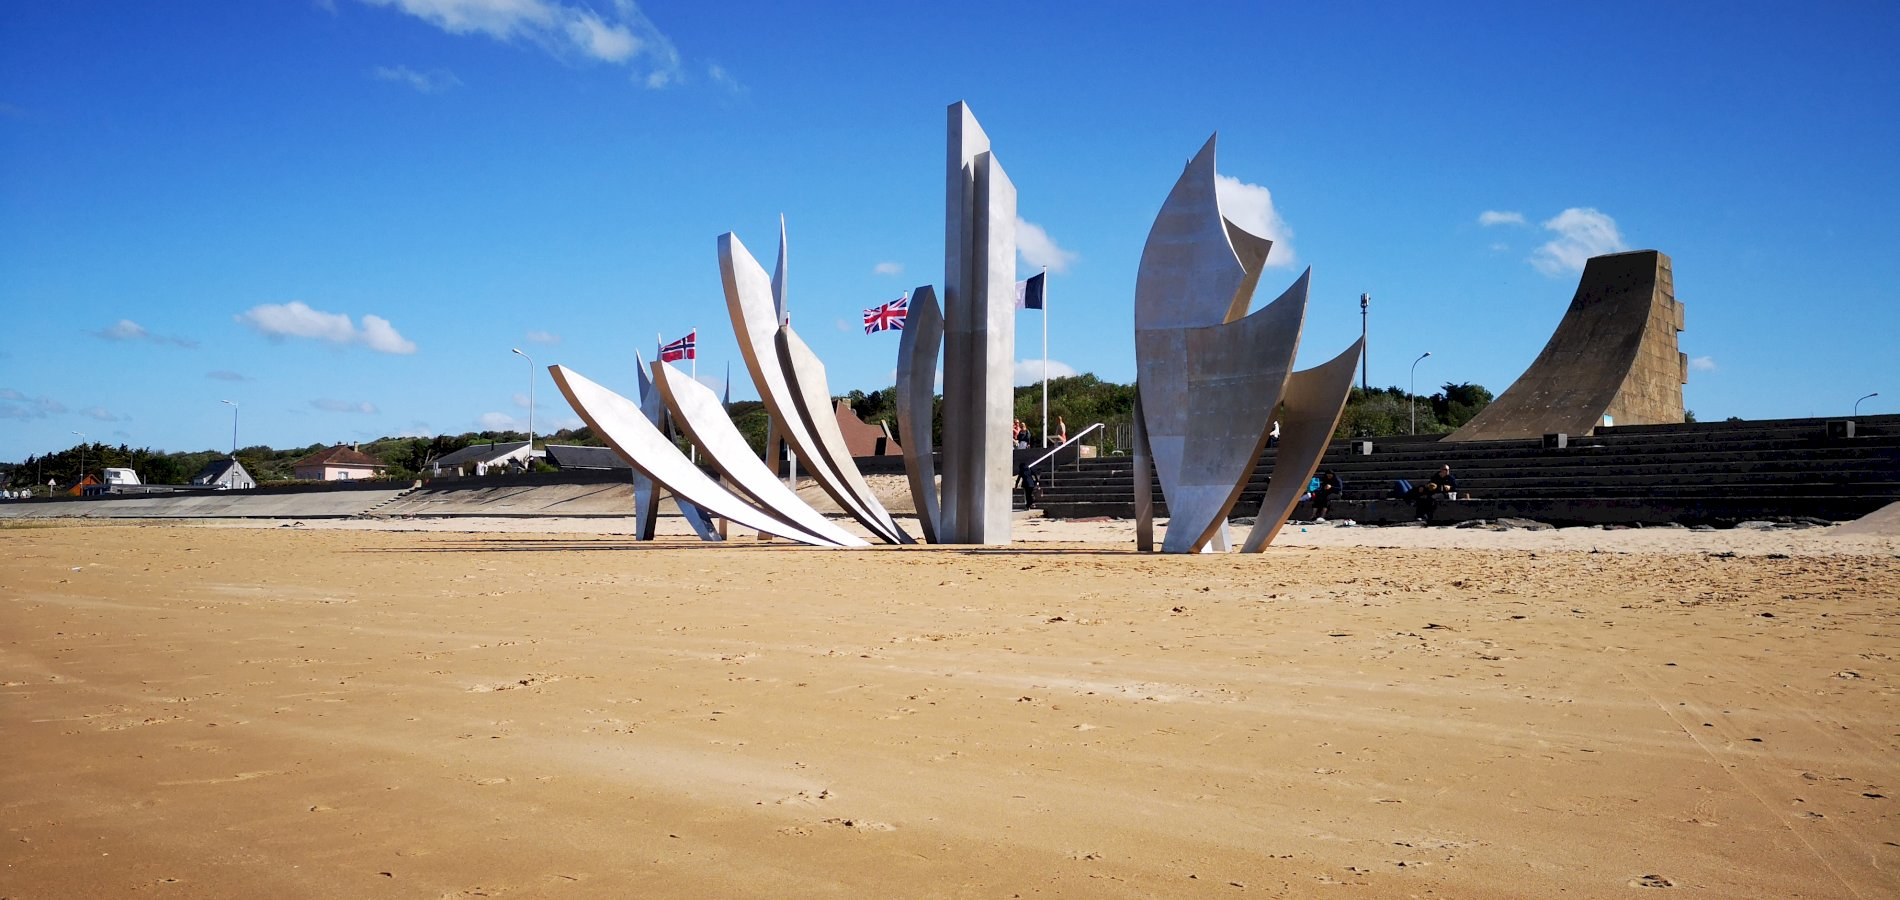 Ophorus Tours - Omaha Beach & Normandy D-Day Sites Private Half Day Trip From Bayeux